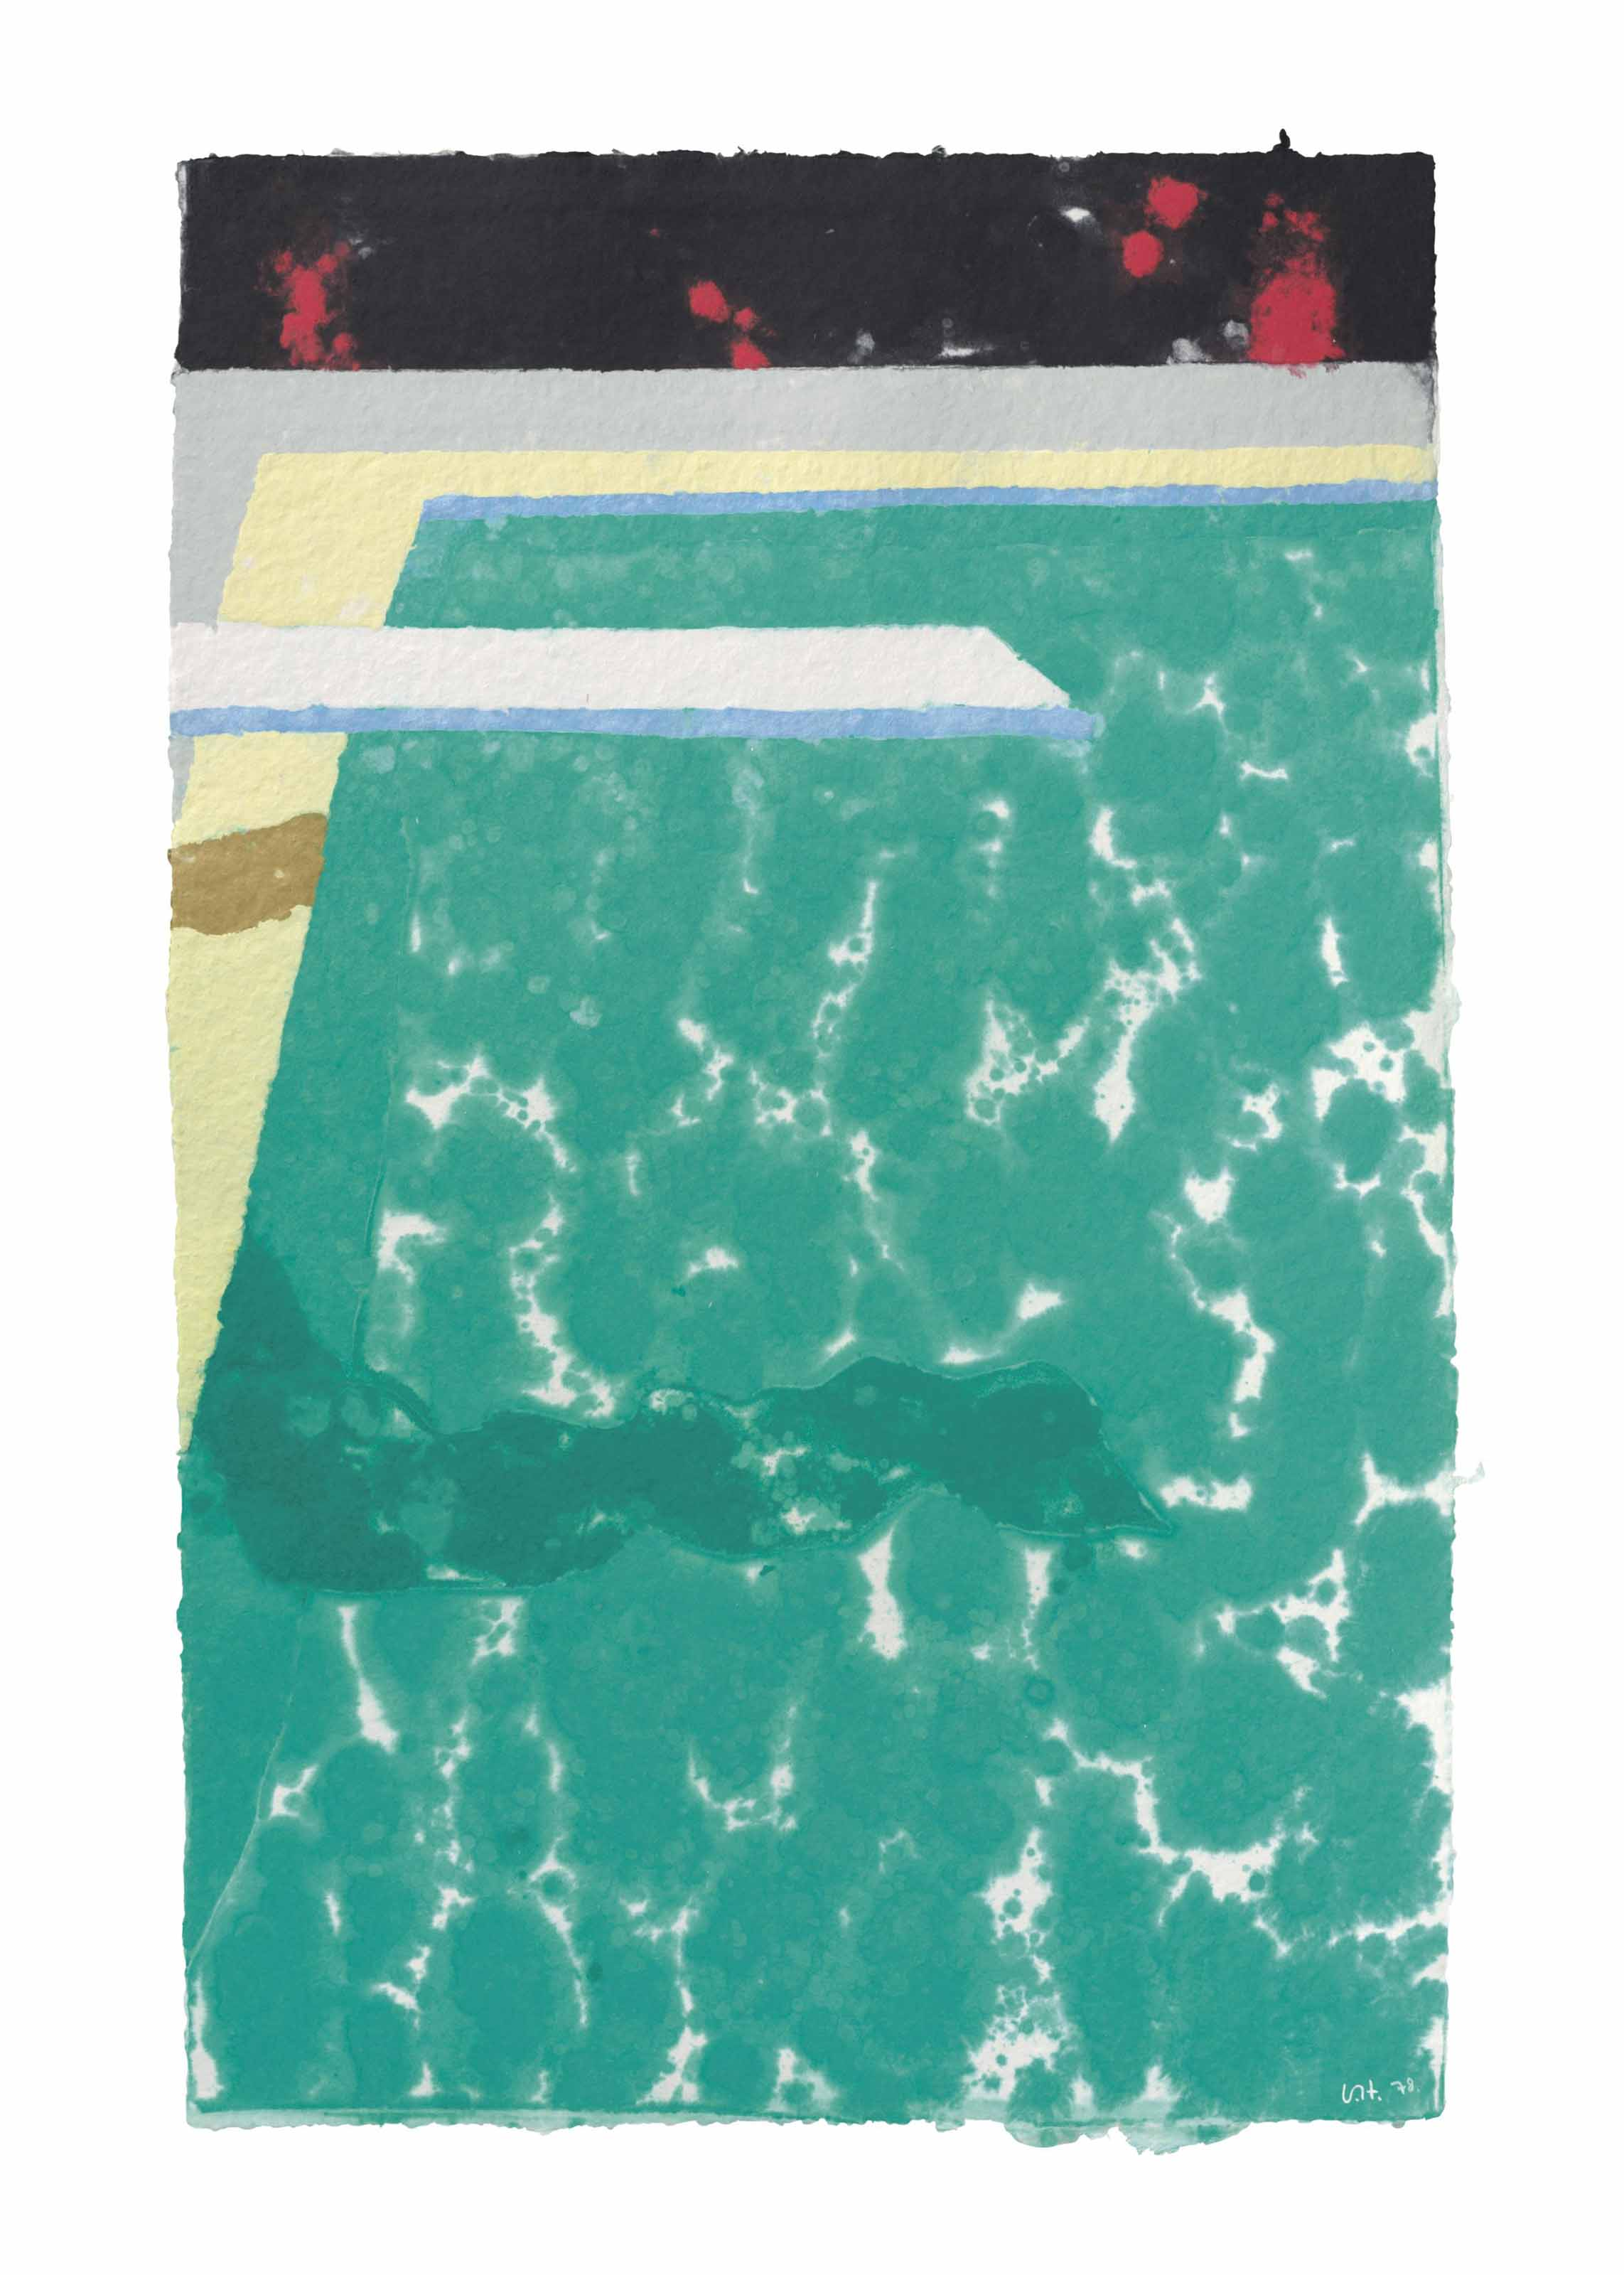 Green Pool with Diving Board and Shadow